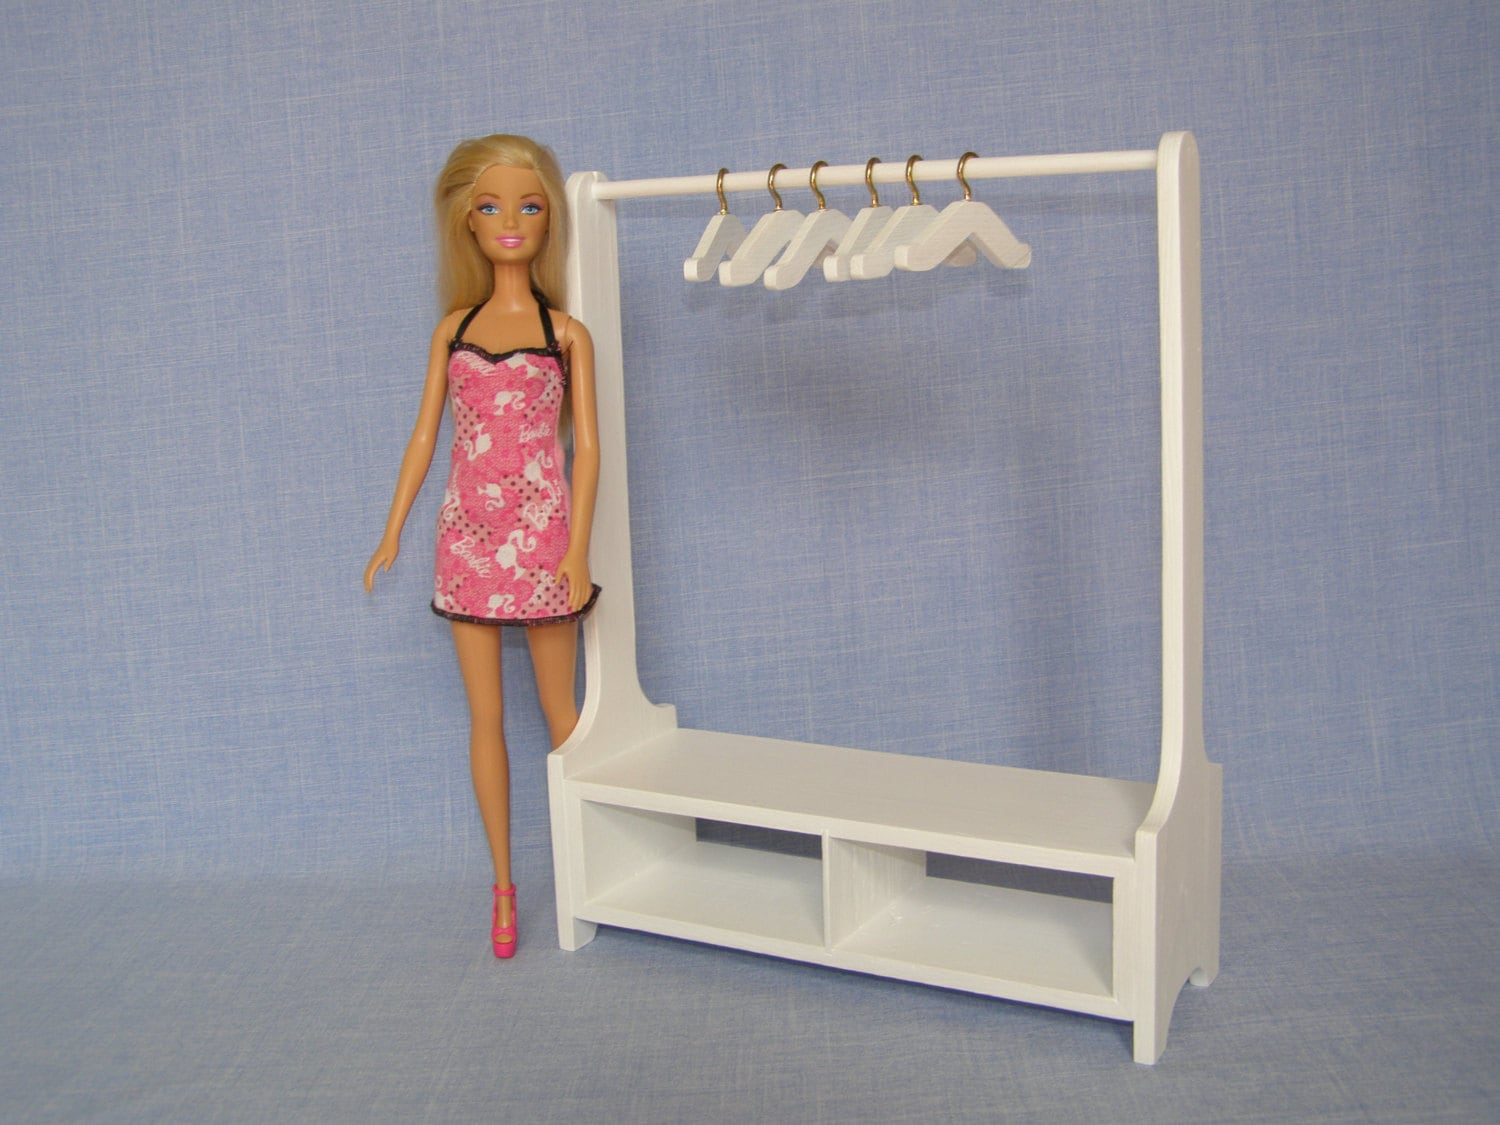 16 Scale Doll Clothes Rack For 12 Inch Doll Handmade Wood